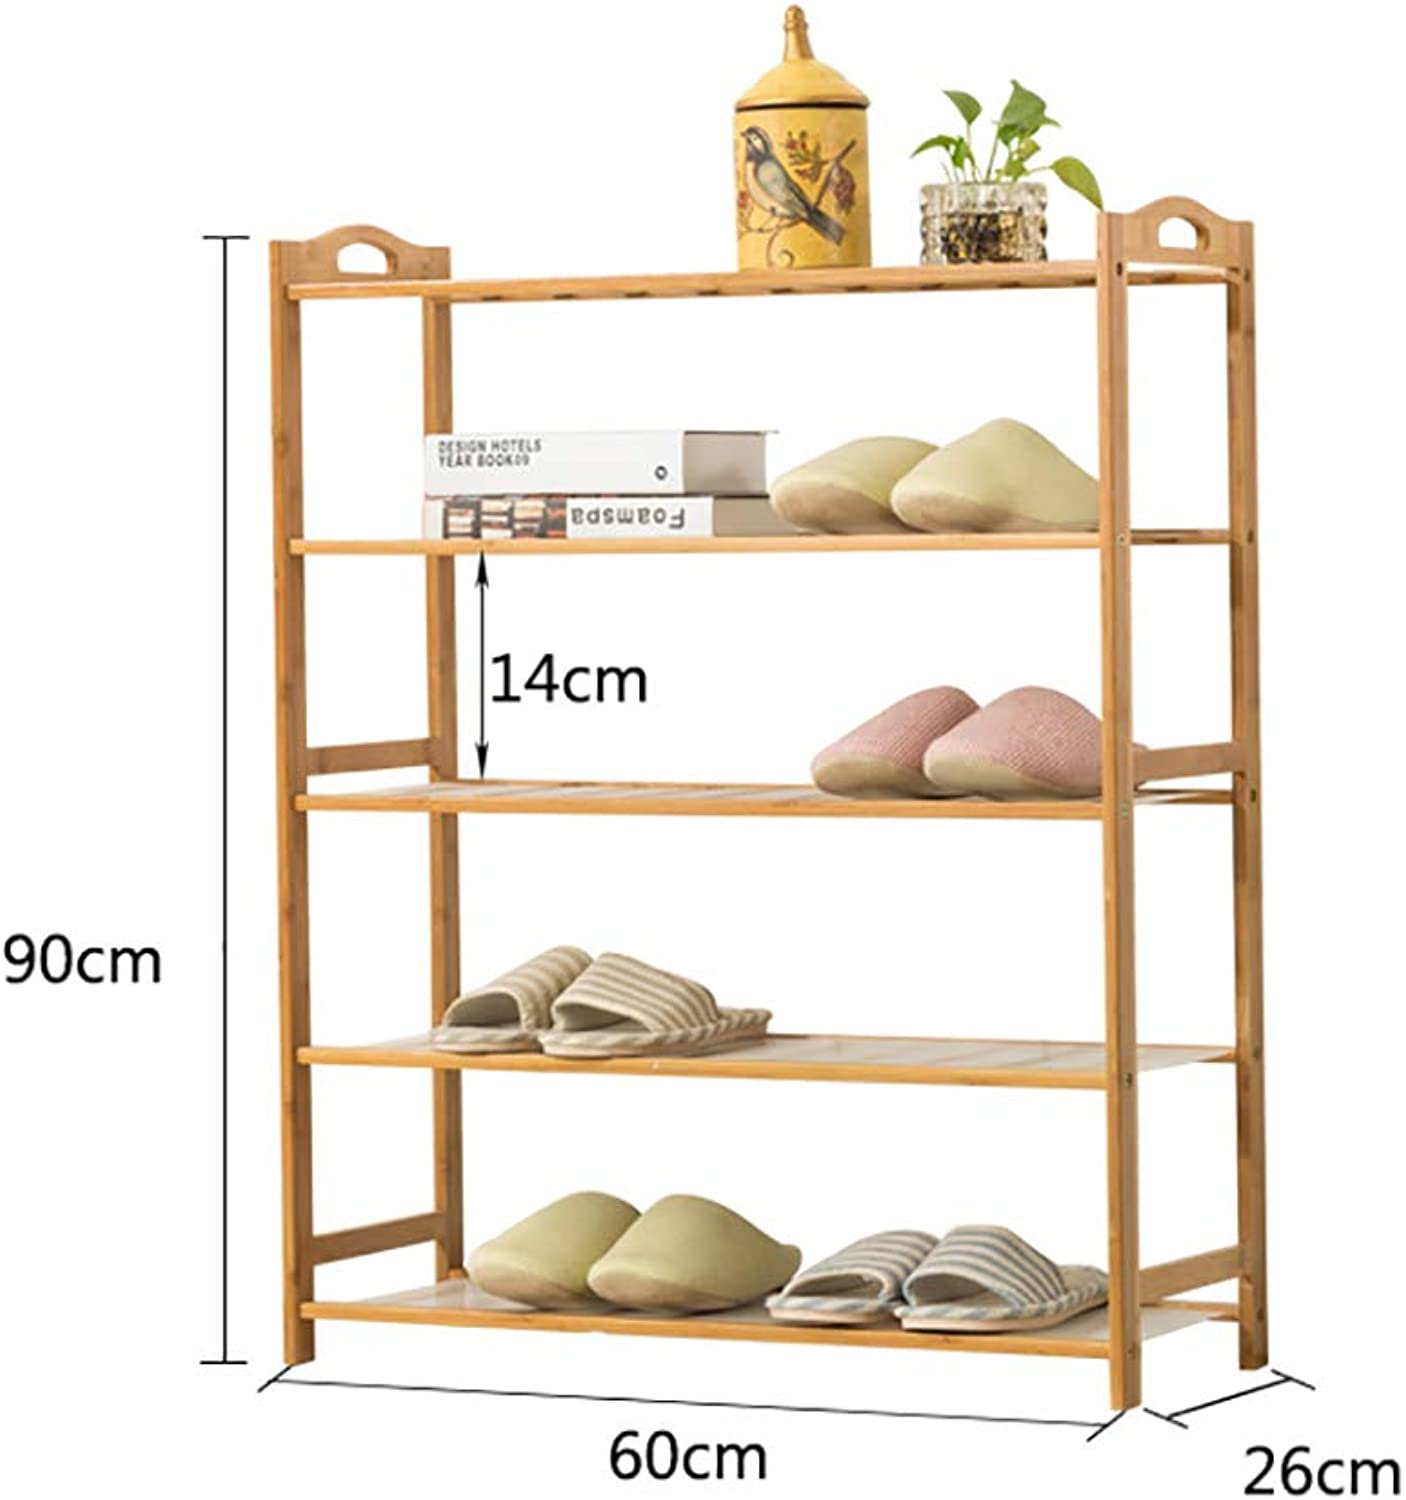 Entrance 5 Floor shoes Rack shoesbox shoes Bench Shelf Storage Shelf Hot Pot Rack shoesbox Multifunction Household Dorm Room Space Saving Doorway Living Room Bamboo (Size   60  26  90cm)